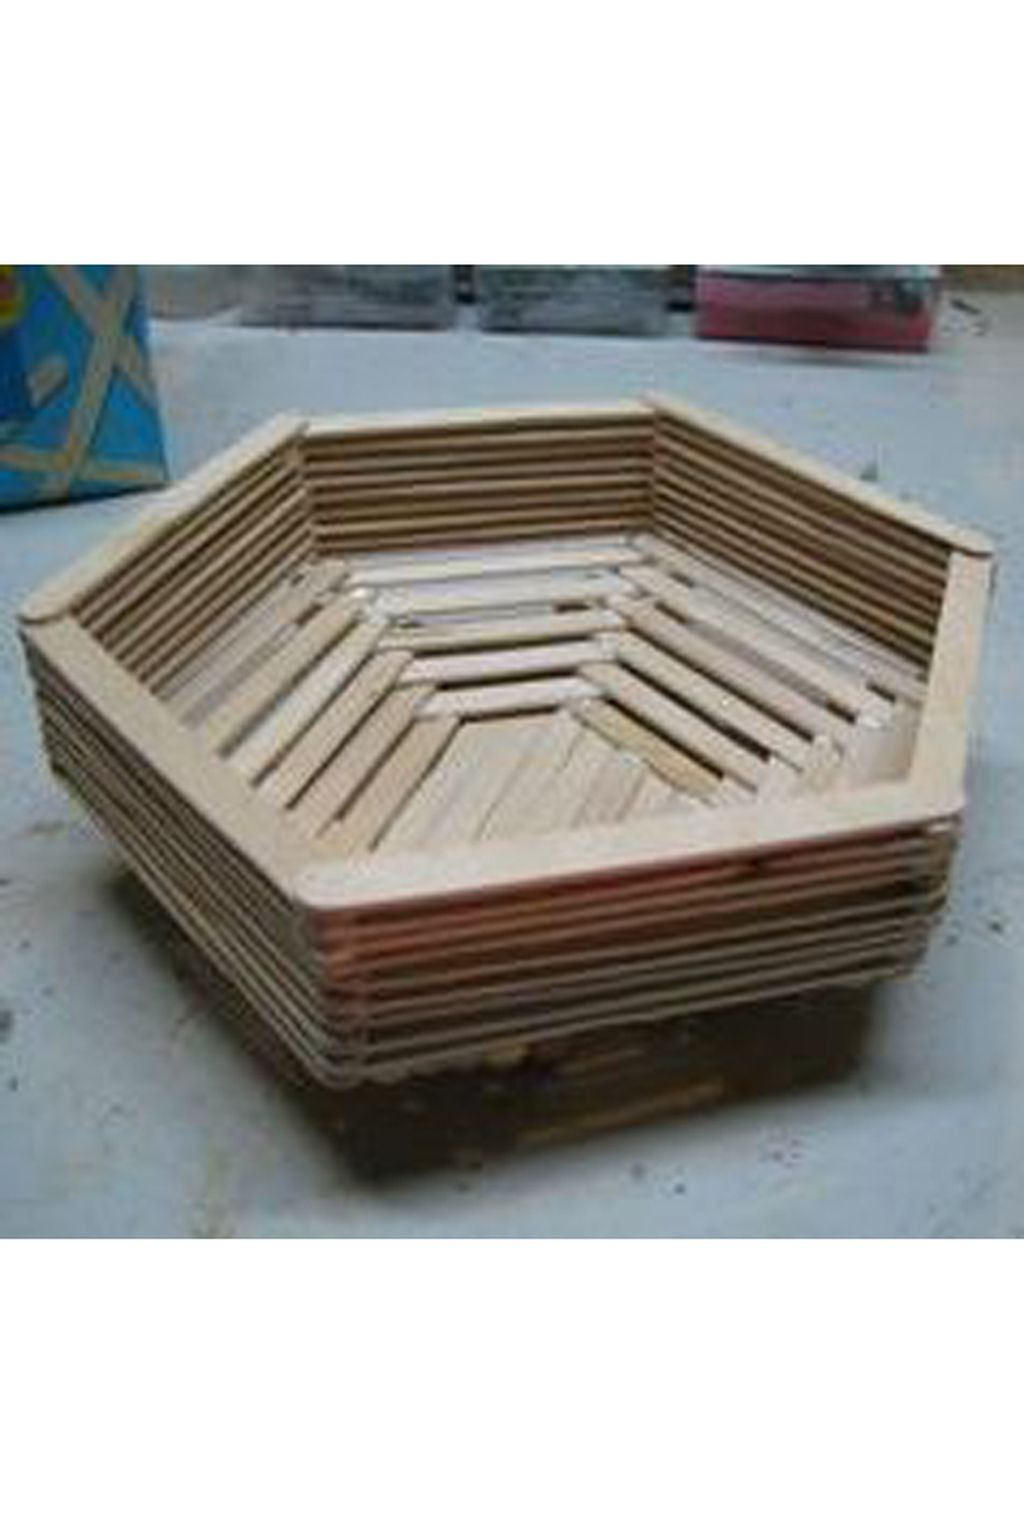 Gorgeous Diy Popsicle Stick Design Ideas For Home To Try Asap 03